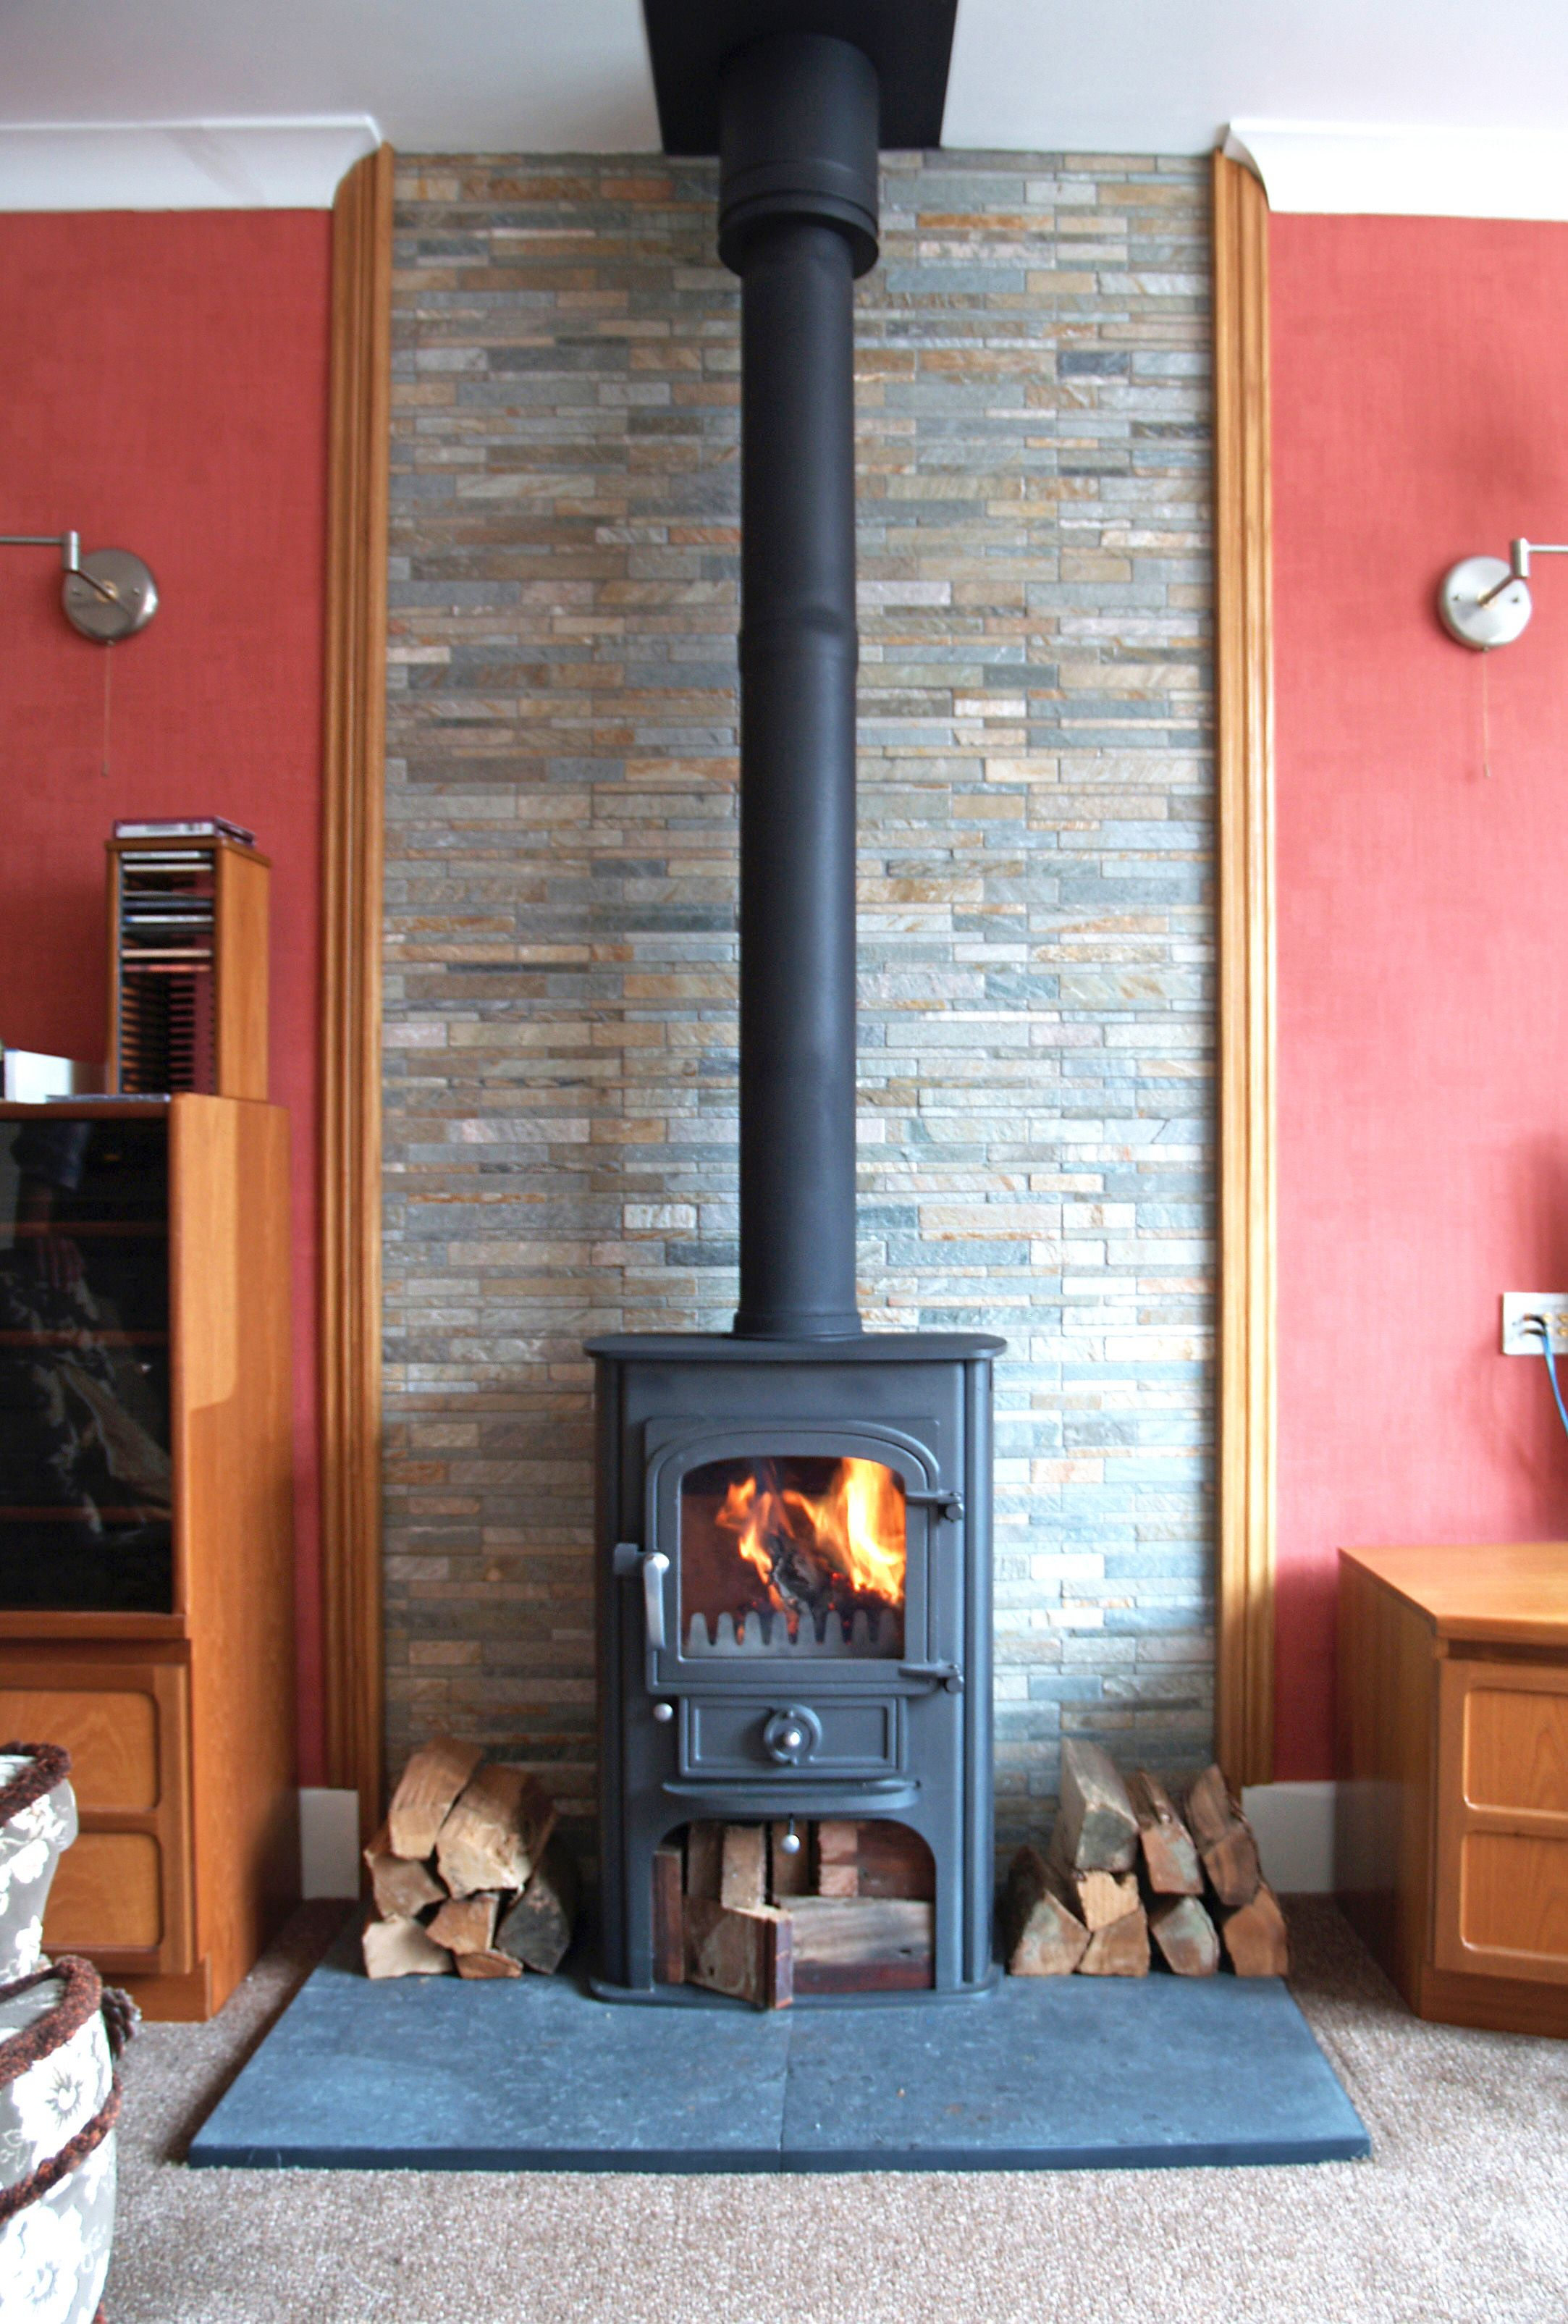 Wood stove surround ideas - Clearview Solution 400 Multi Fuel Stove With Welsh Slate Hearth And Slate Tiled Backing Fitted